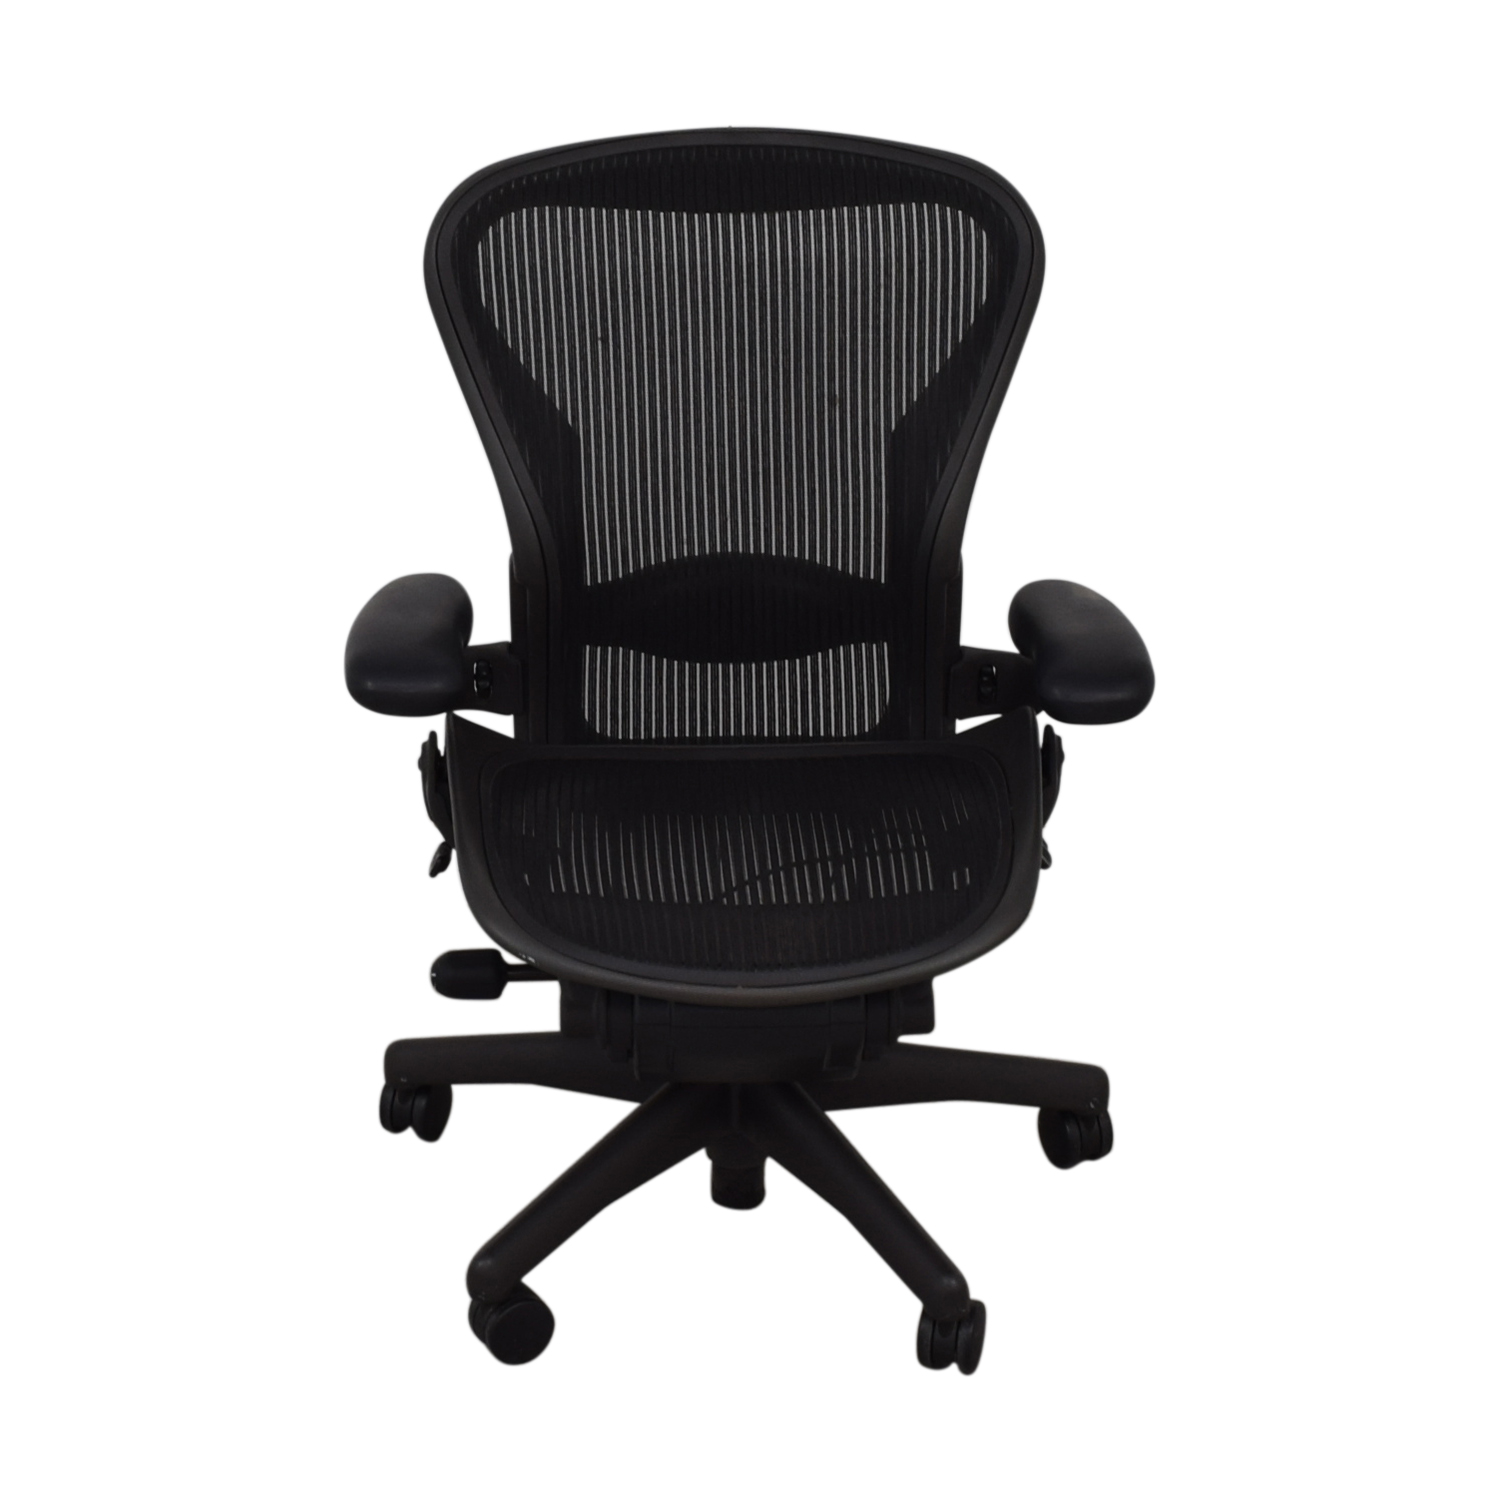 Magnificent 76 Off Herman Miller Herman Miller Aeron Size B Black Office Desk Chair Chairs Forskolin Free Trial Chair Design Images Forskolin Free Trialorg